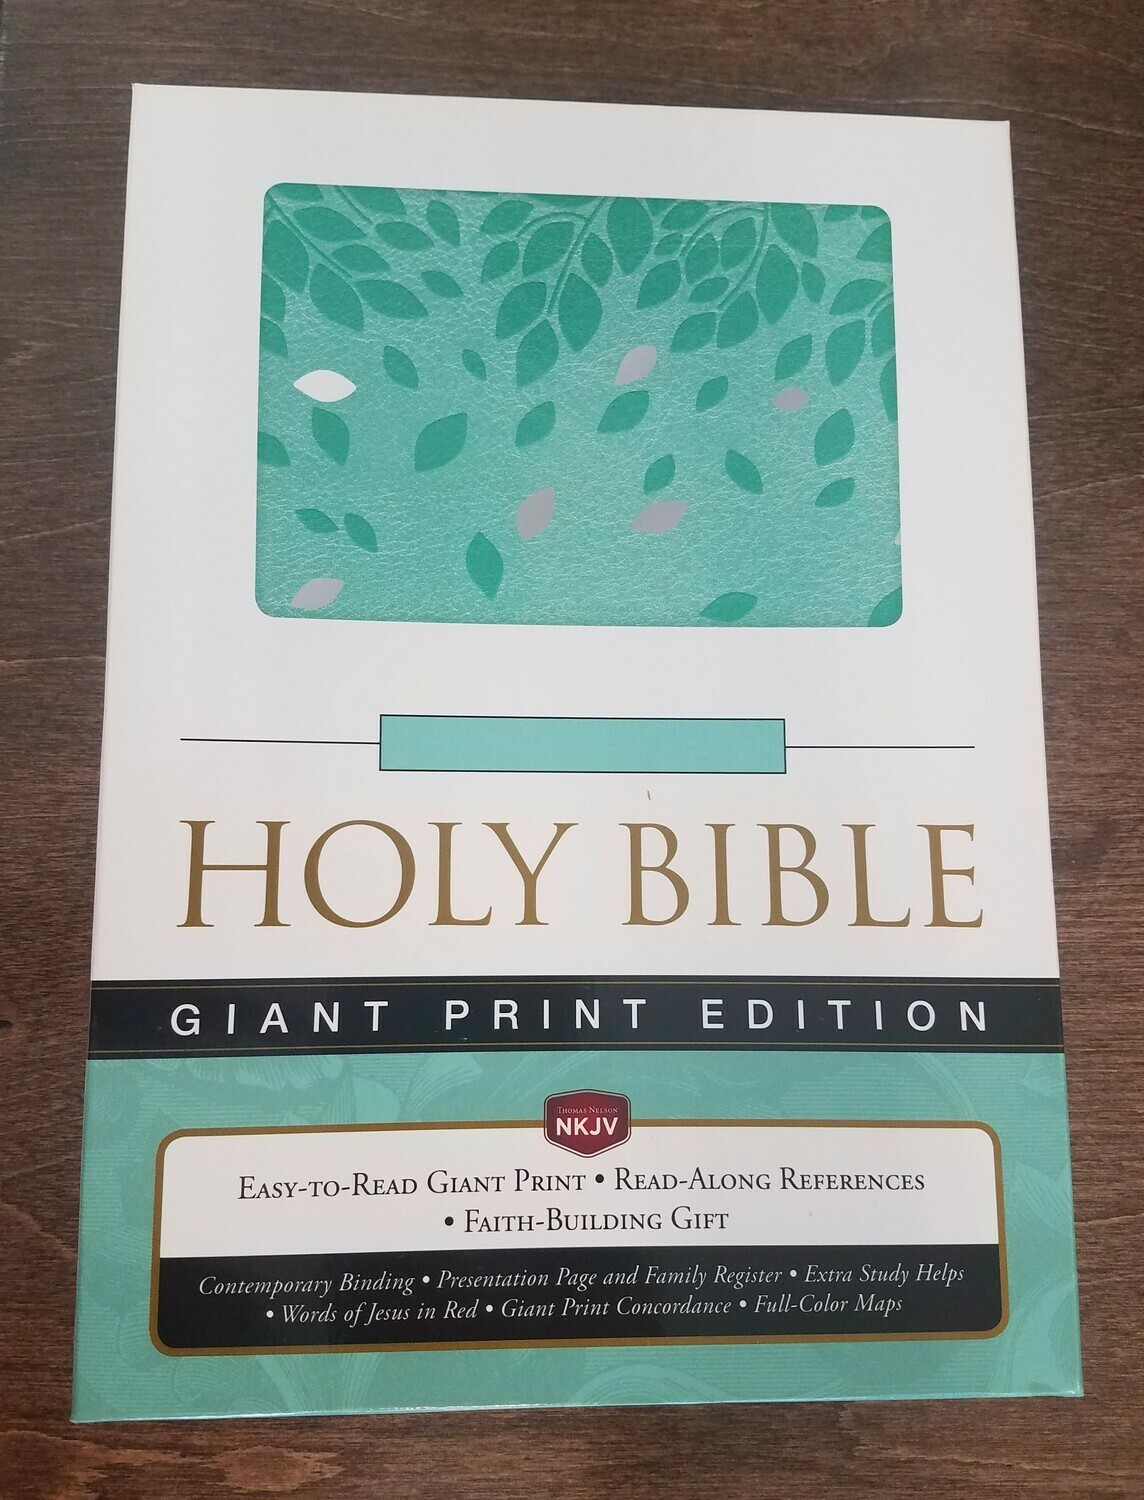 NKJV Giant Print Holy Bible Reference Edition - Soft Green Leather